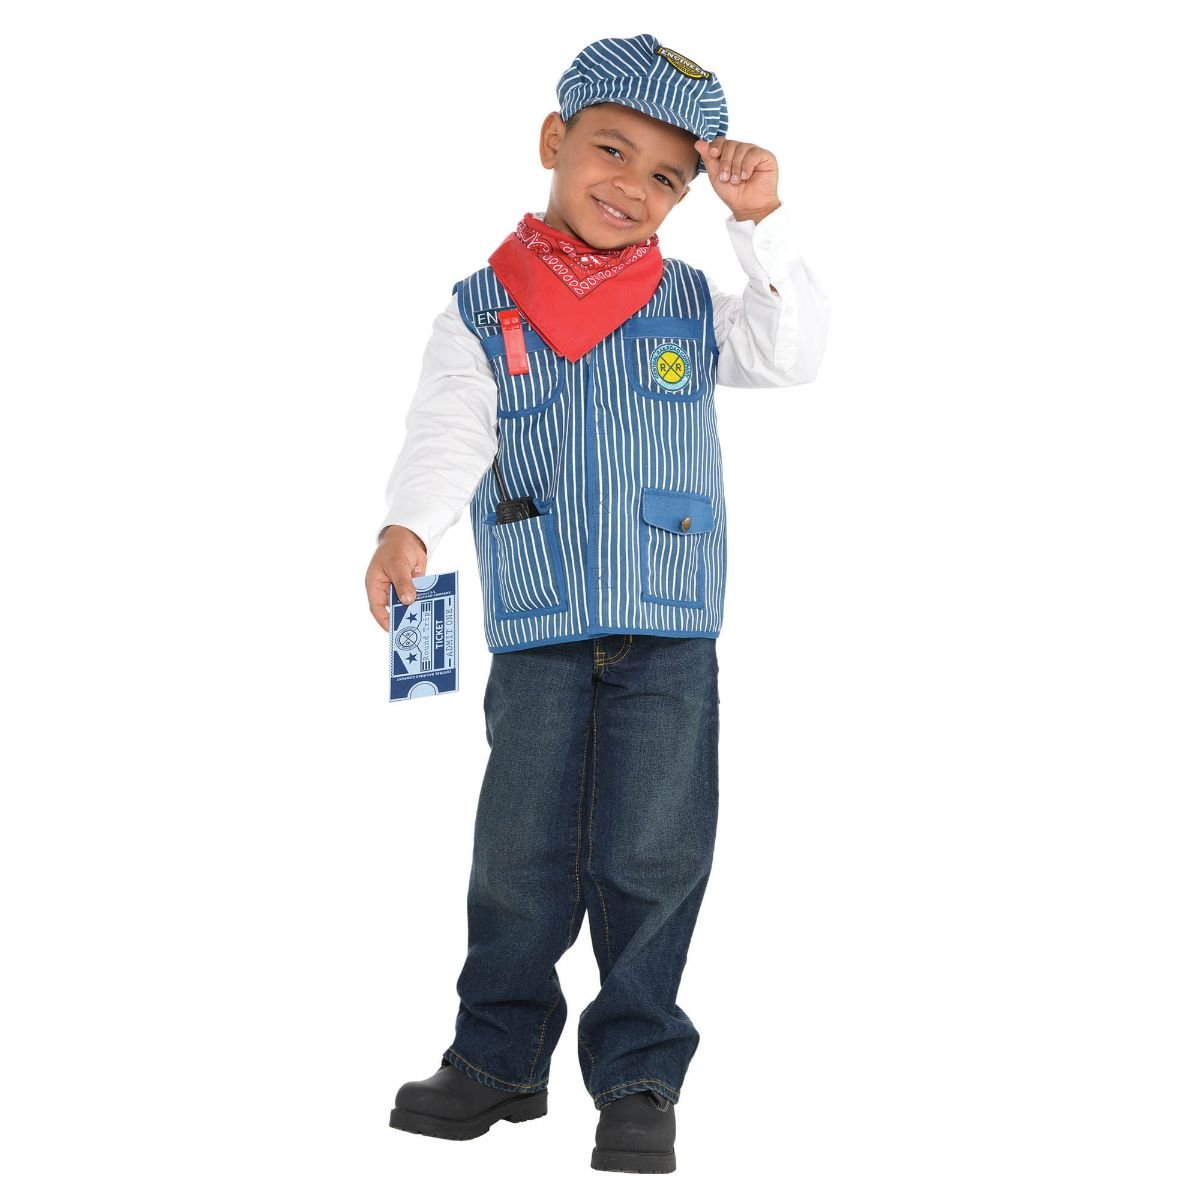 Amazon.com: Amscan 848305 tren ingeniero Kit trajes de niño ...